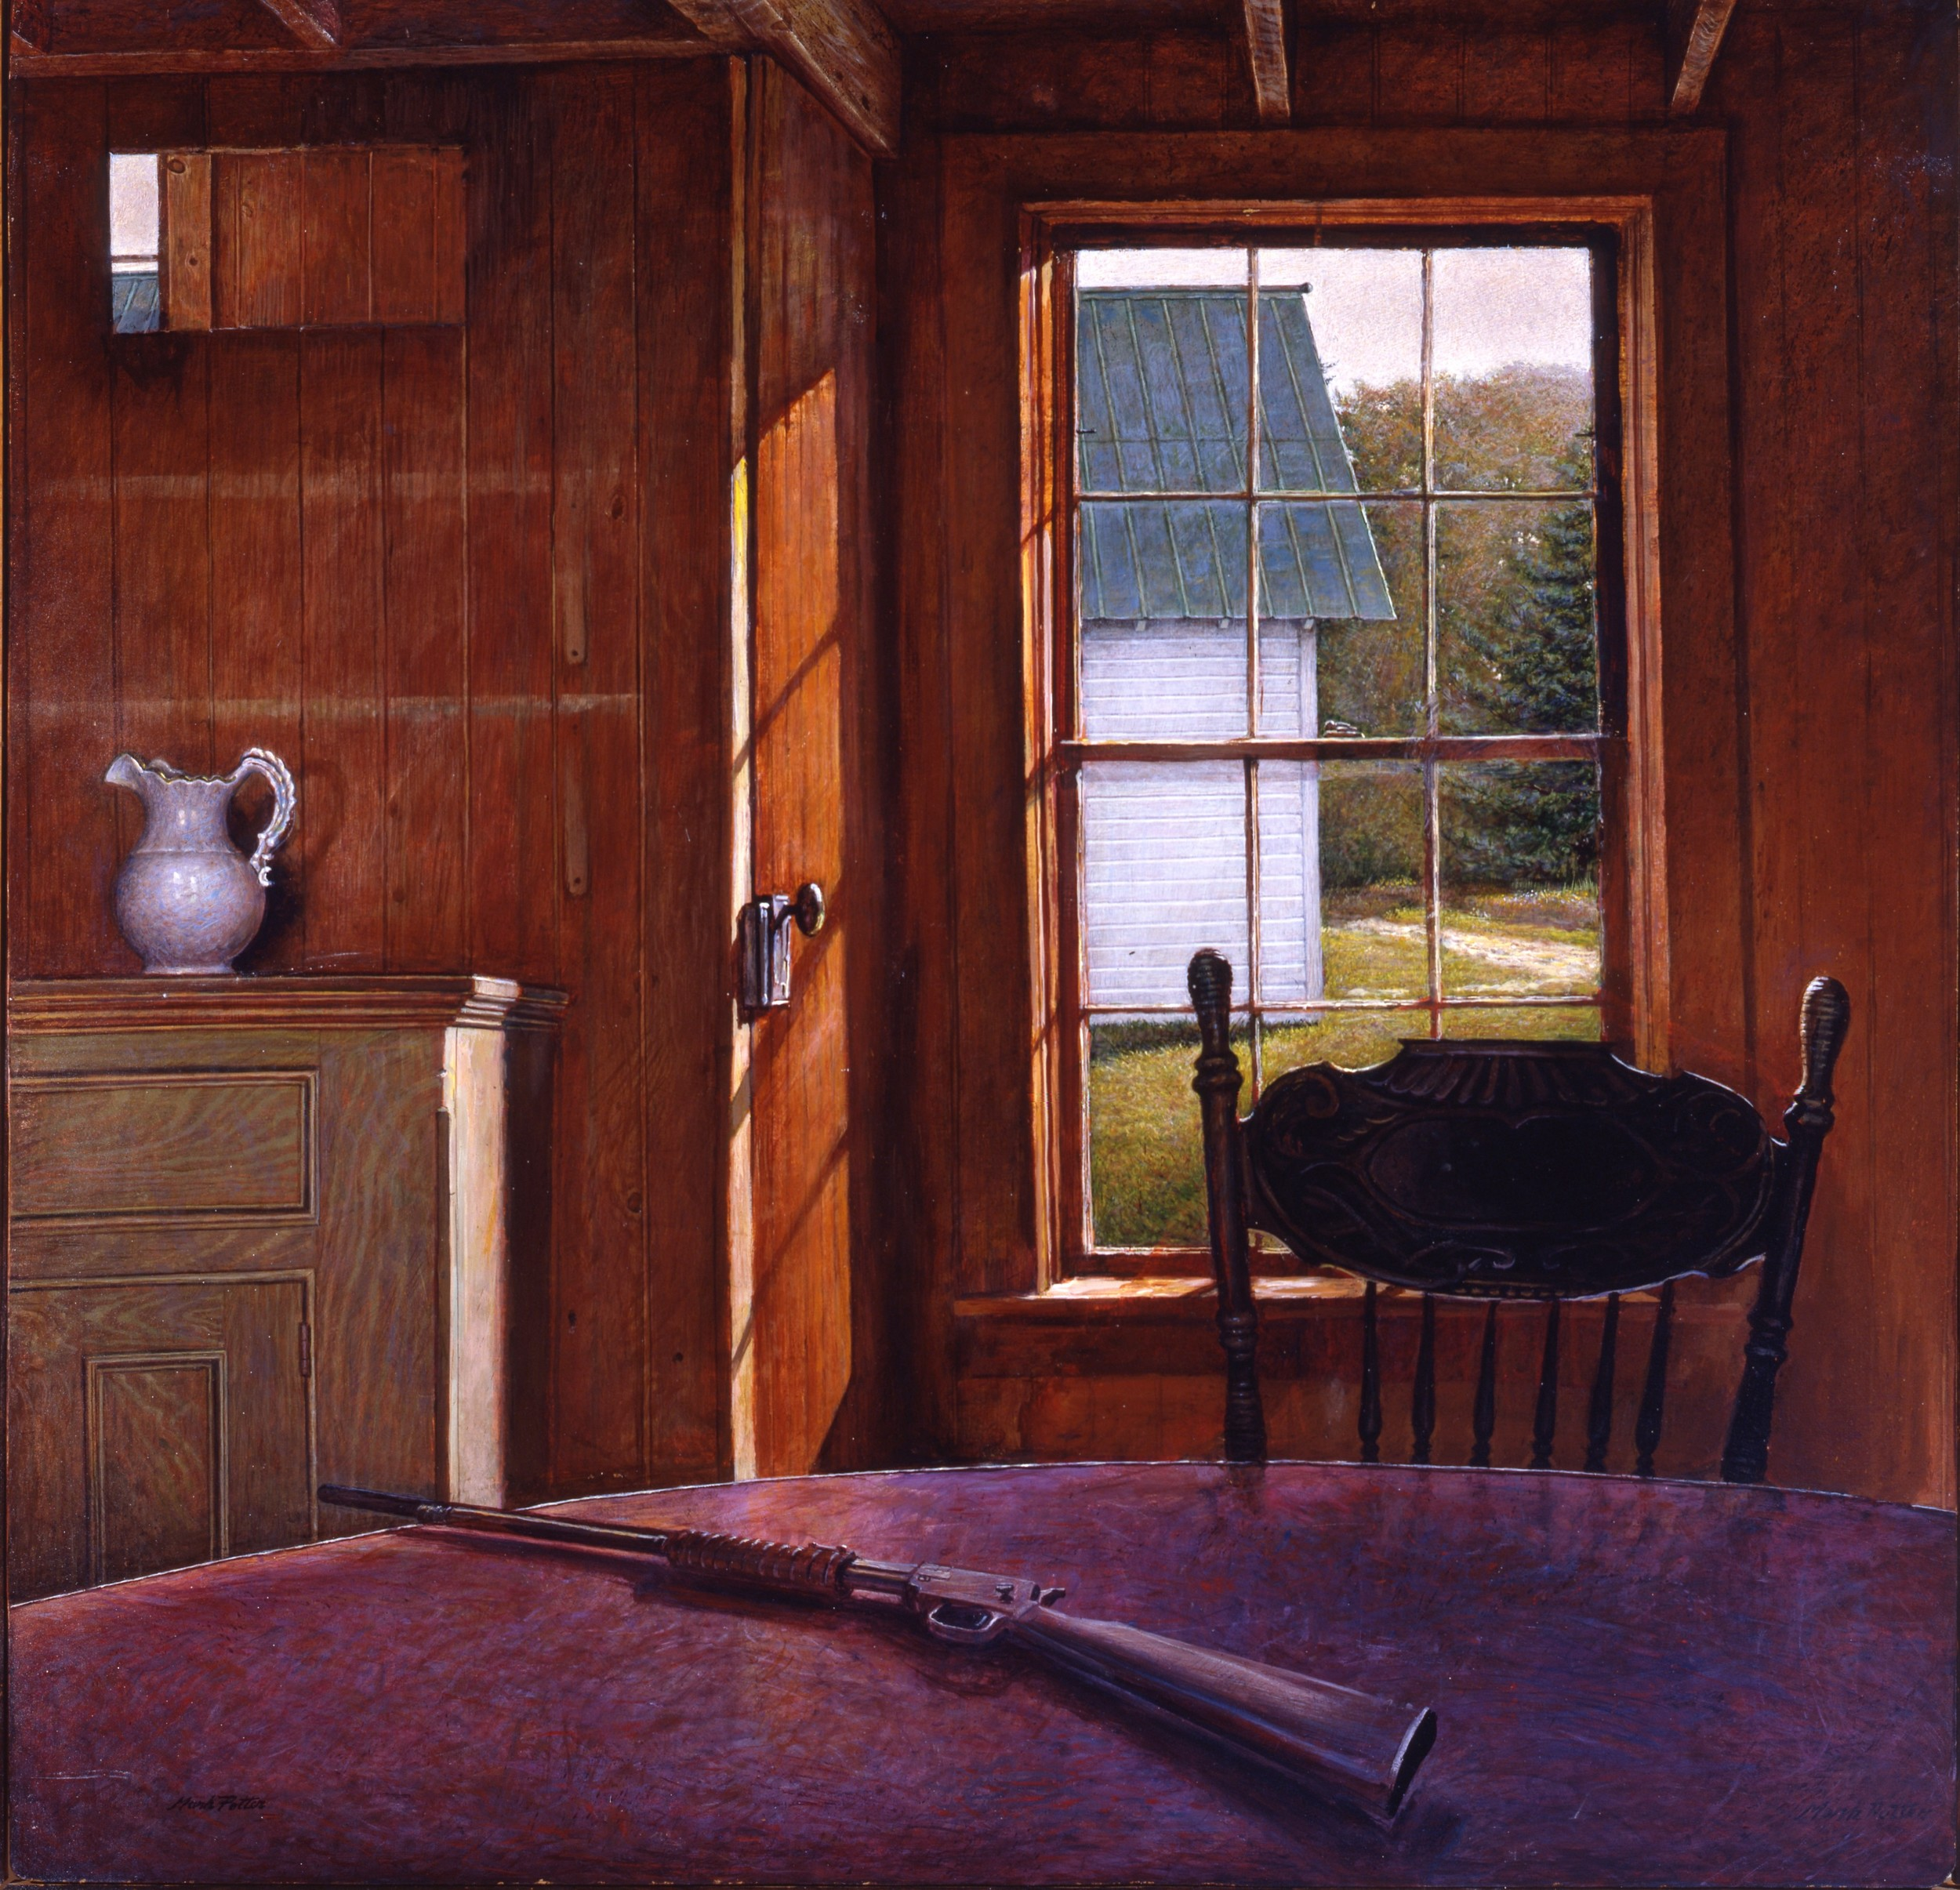 Upstate aka The Maids' Dining Room.      1983, tempera on panel. 45.5 x 47 inches. Courtesy of Adirondack Experience: The Museum on Blue Mountain Lake.  2011.057.     Of all the rooms in my camp this one has always held a special mystery for me, and it doesn't even have a view of the lake. Illustrious guides from Brandreth history sat around this table; men like Reuben Cary, Kurt Hall, Raymond Sabattis. The stairs that lead up from the door are marked by the caulks of lumberman's boots. Even now the room is called the Maids' Dining Room, a reminder of grander days.